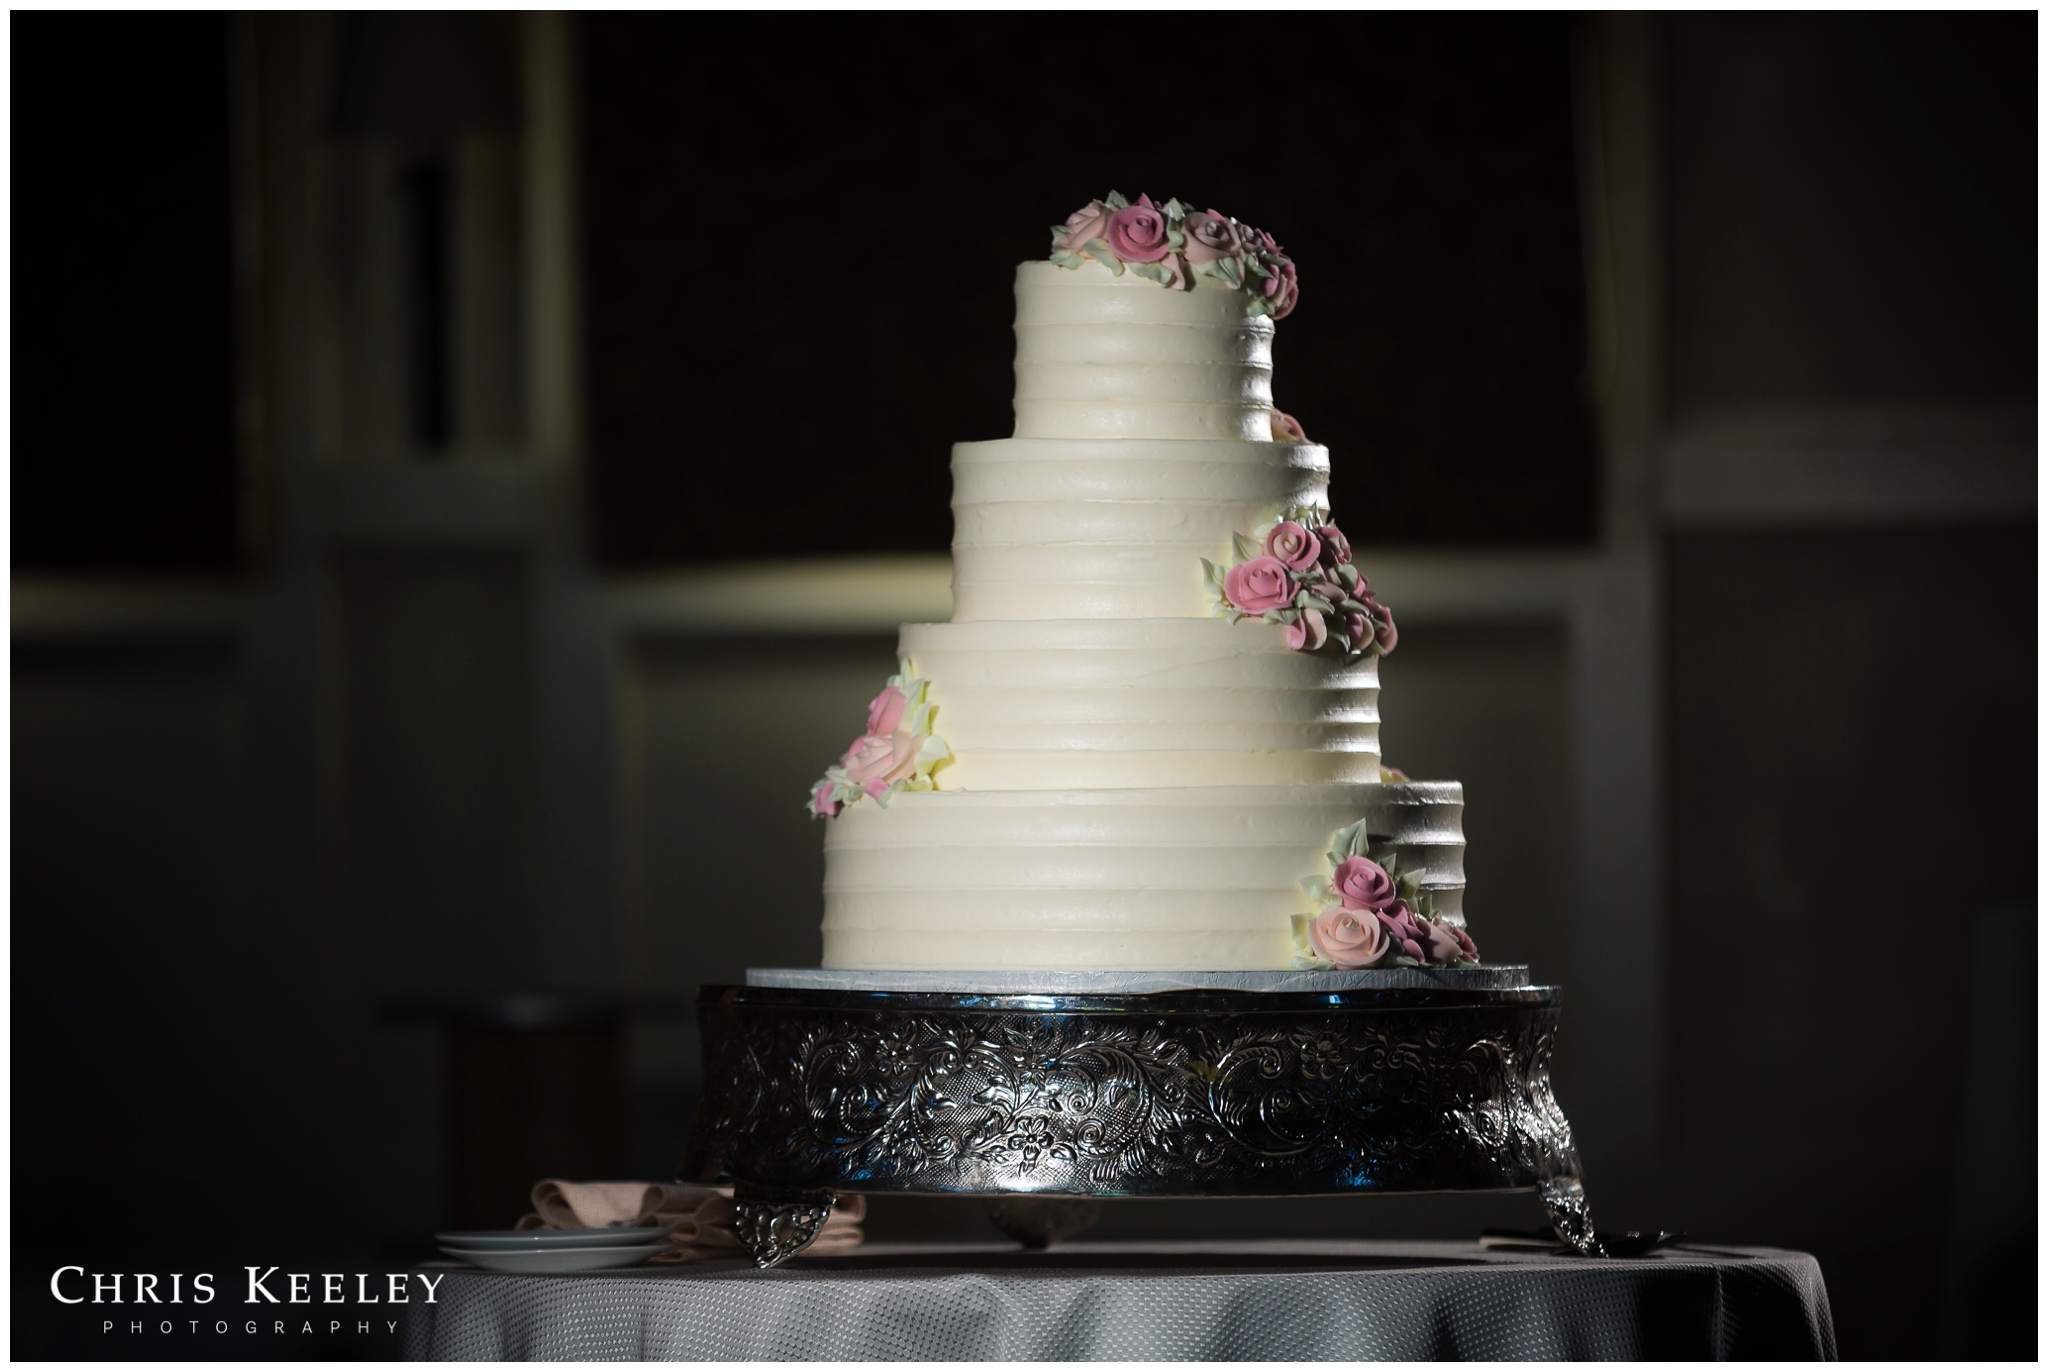 montillios-bakery-tiered-wedding-cake.jpg